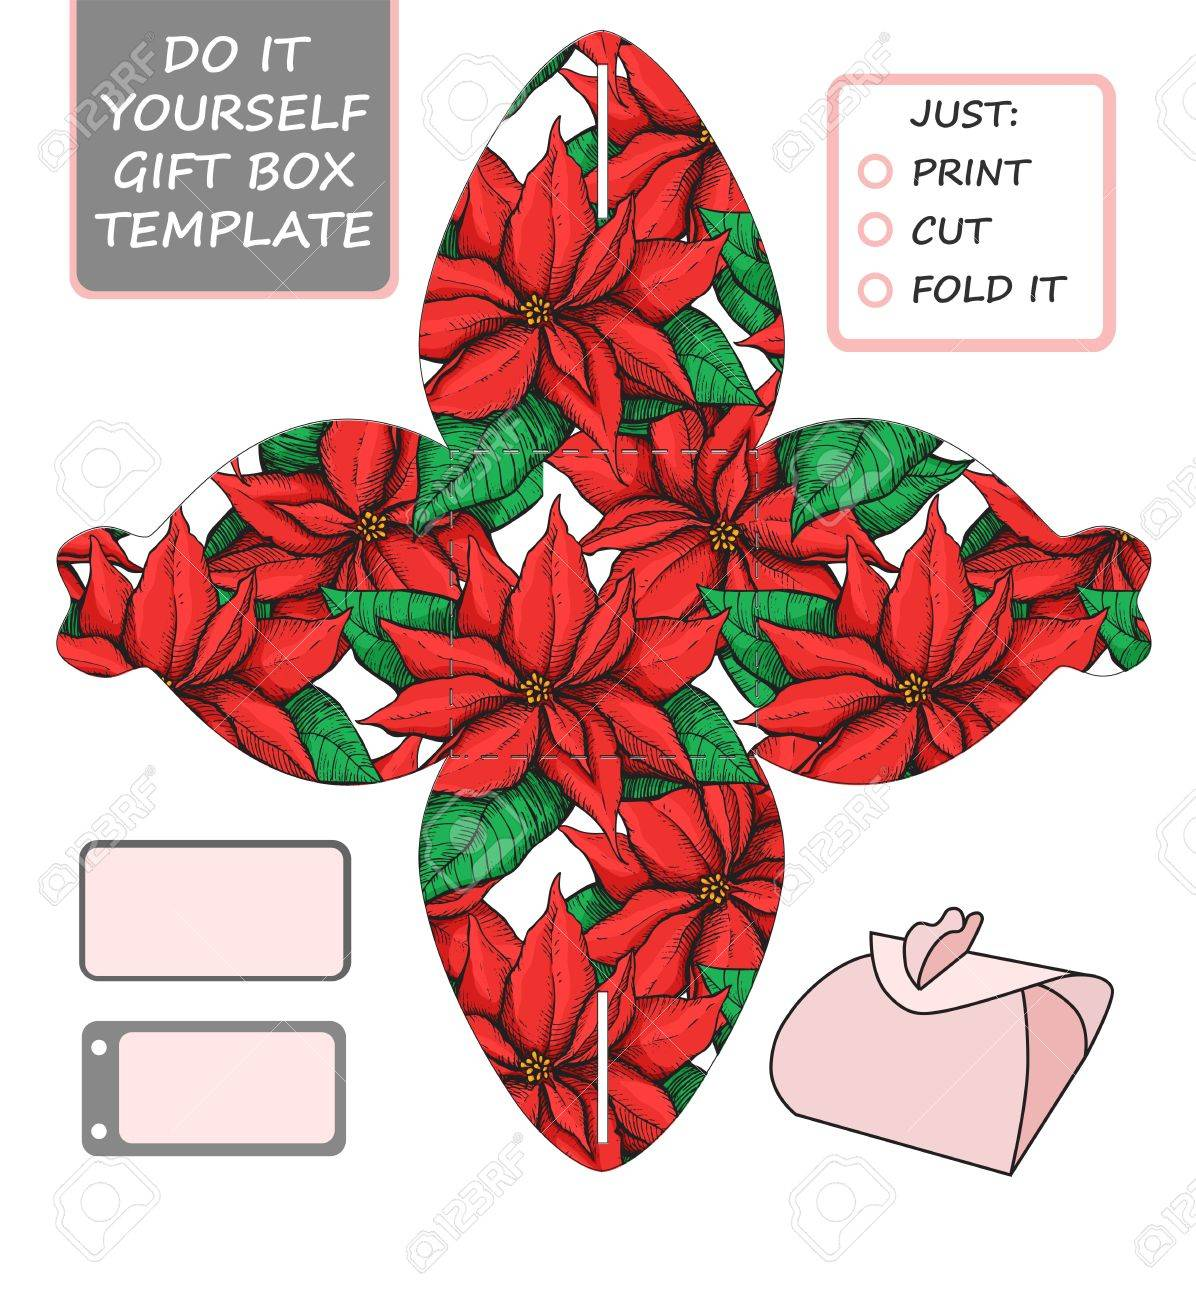 Christmas Gift Box Template.Favor Gift Box Die Cut Box Template With Poinsettia Pattern